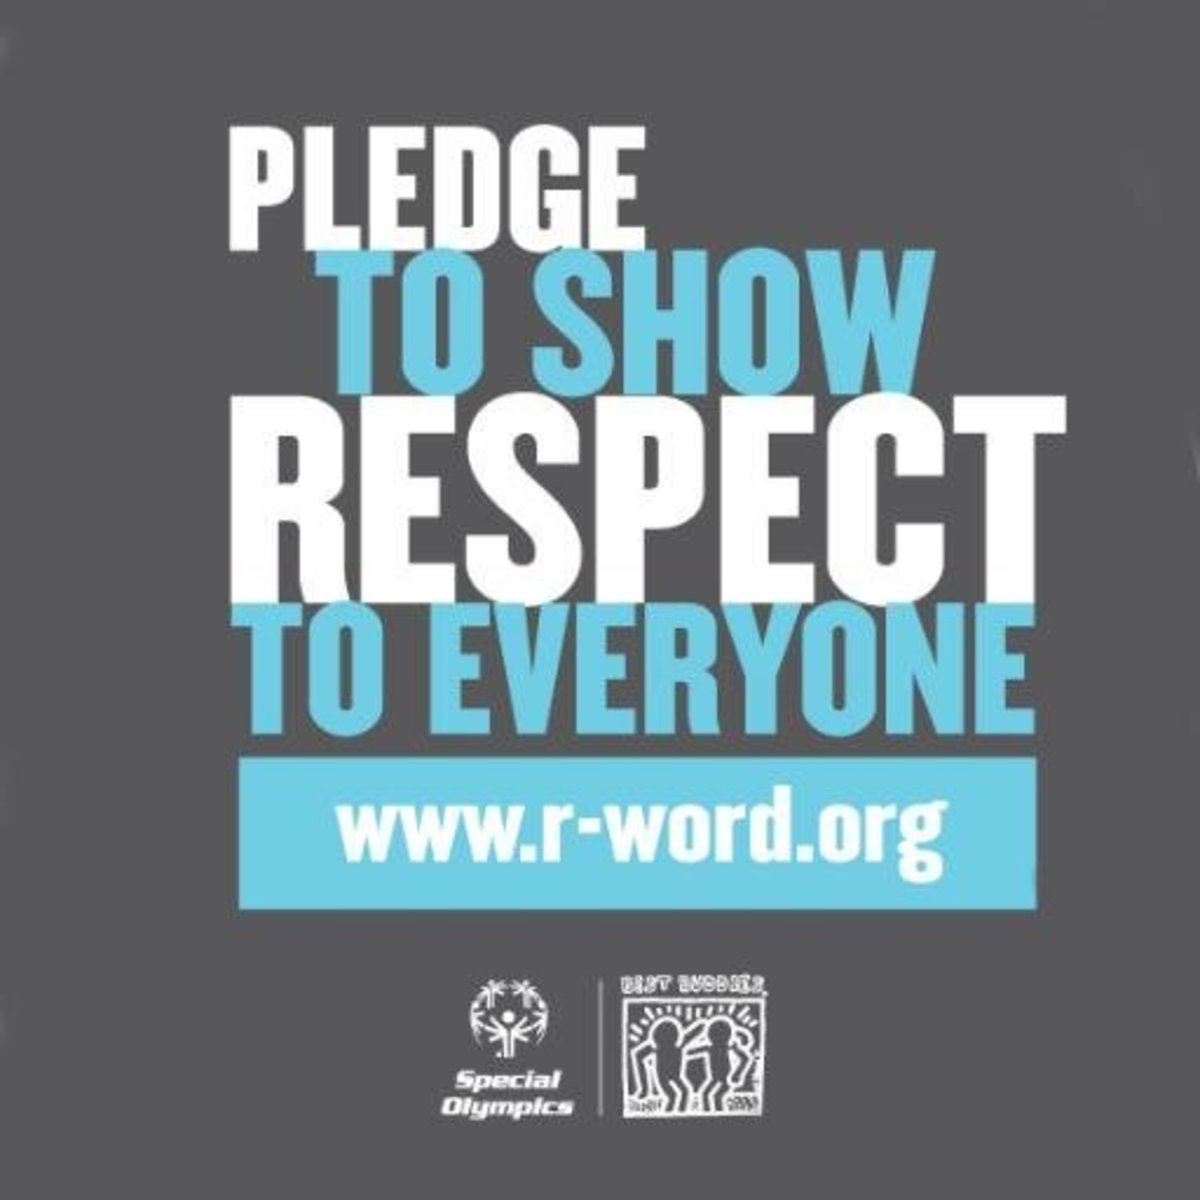 The R-Word: Why Do People Still Insist on Using It?